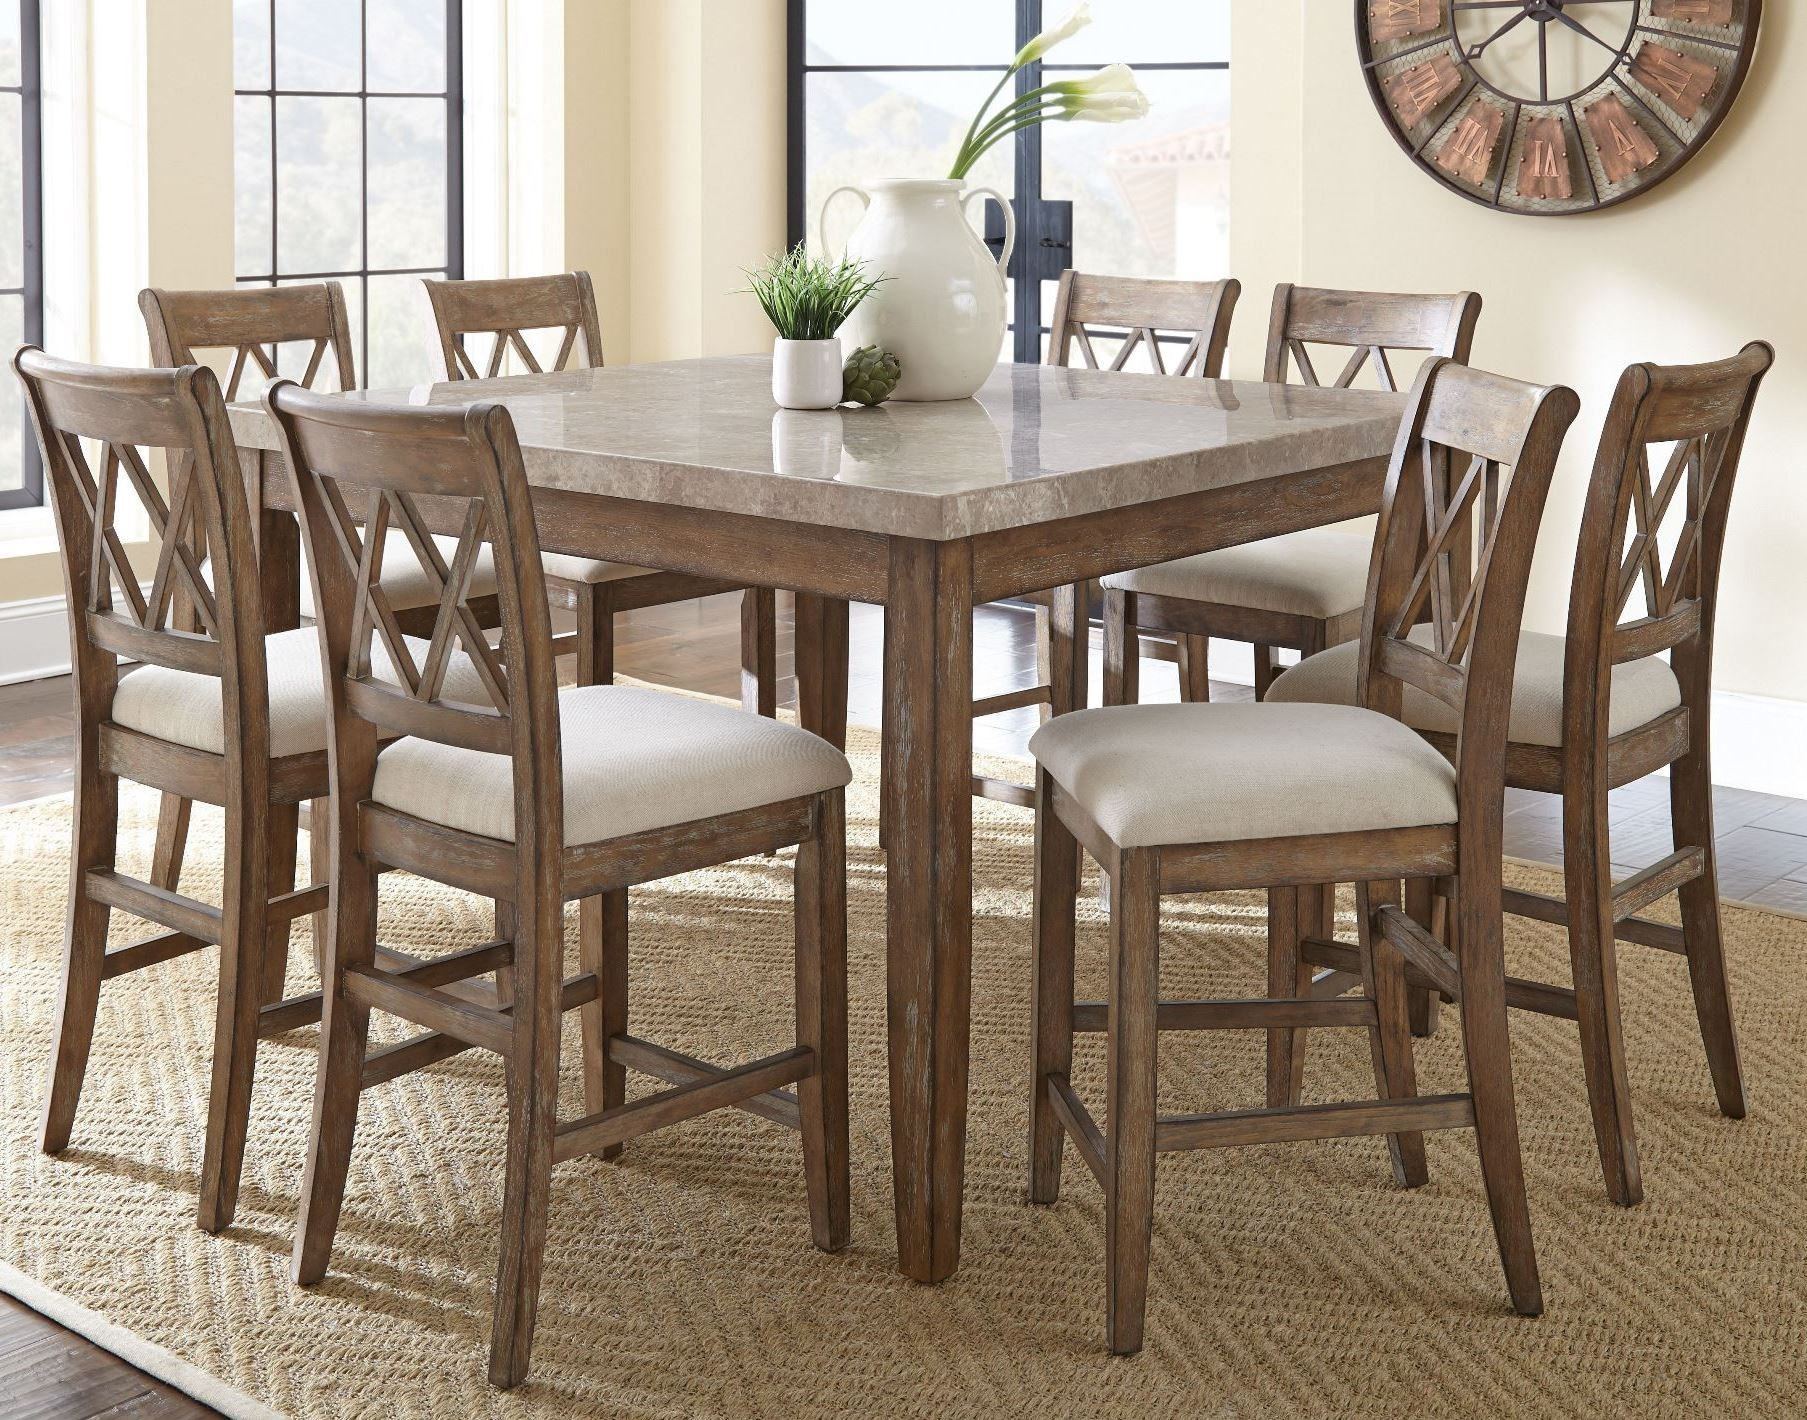 Franco Square Marble Top Counter Height Dining Room Set From Steve Silver  (FR5454WPT) | Coleman Furniture